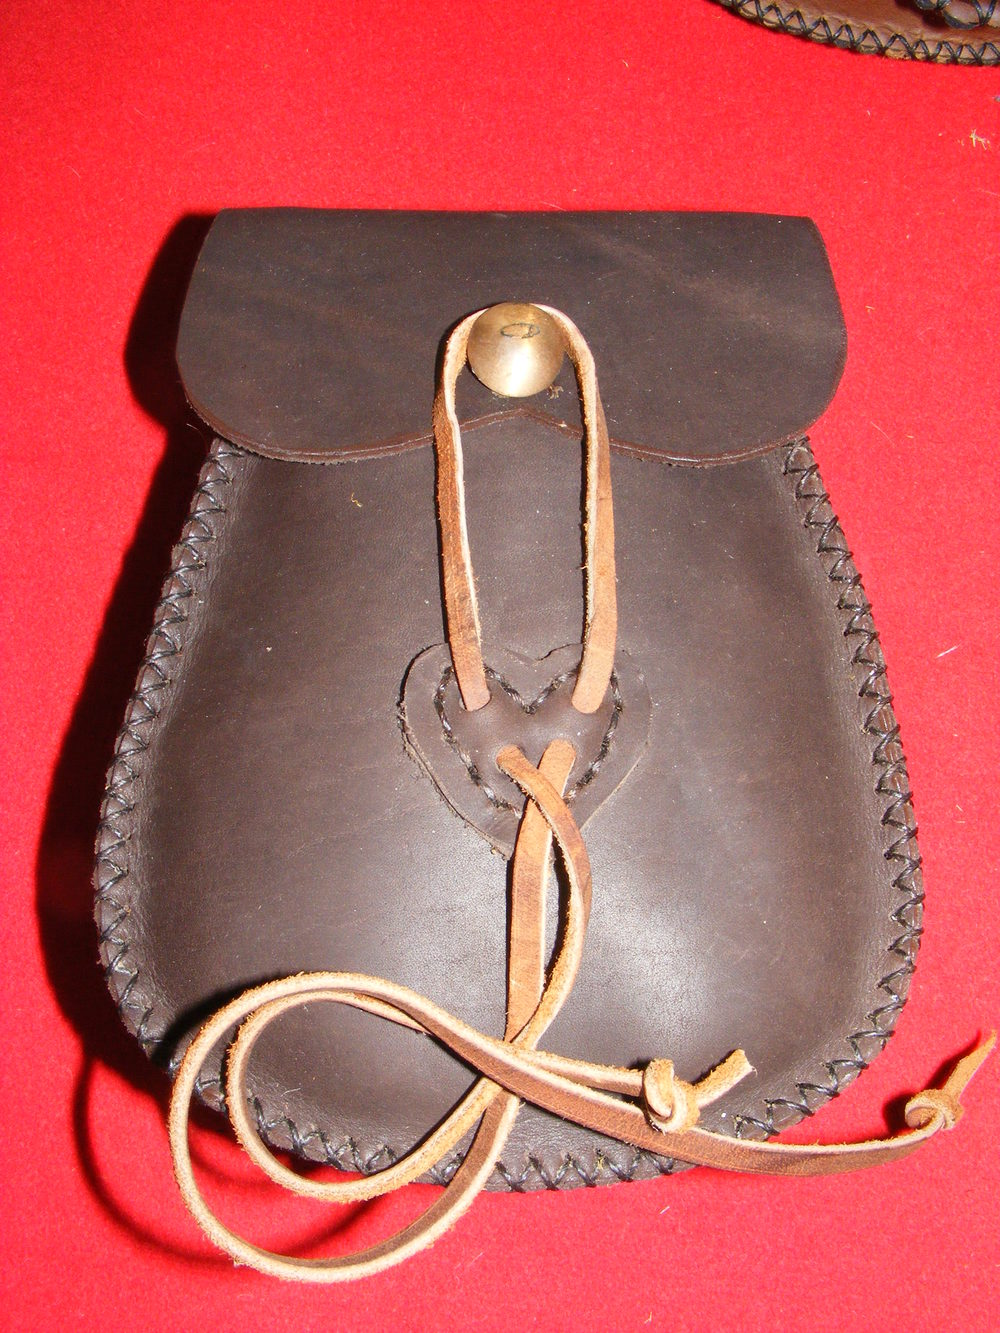 "Ladies' Belt Pocket:  Inside pocket, scalloped flap with antler button hold down  Size: 8"" x 6"" x 2 /12""  Price: $35.00  Inventory Tag: GB-5-LB"